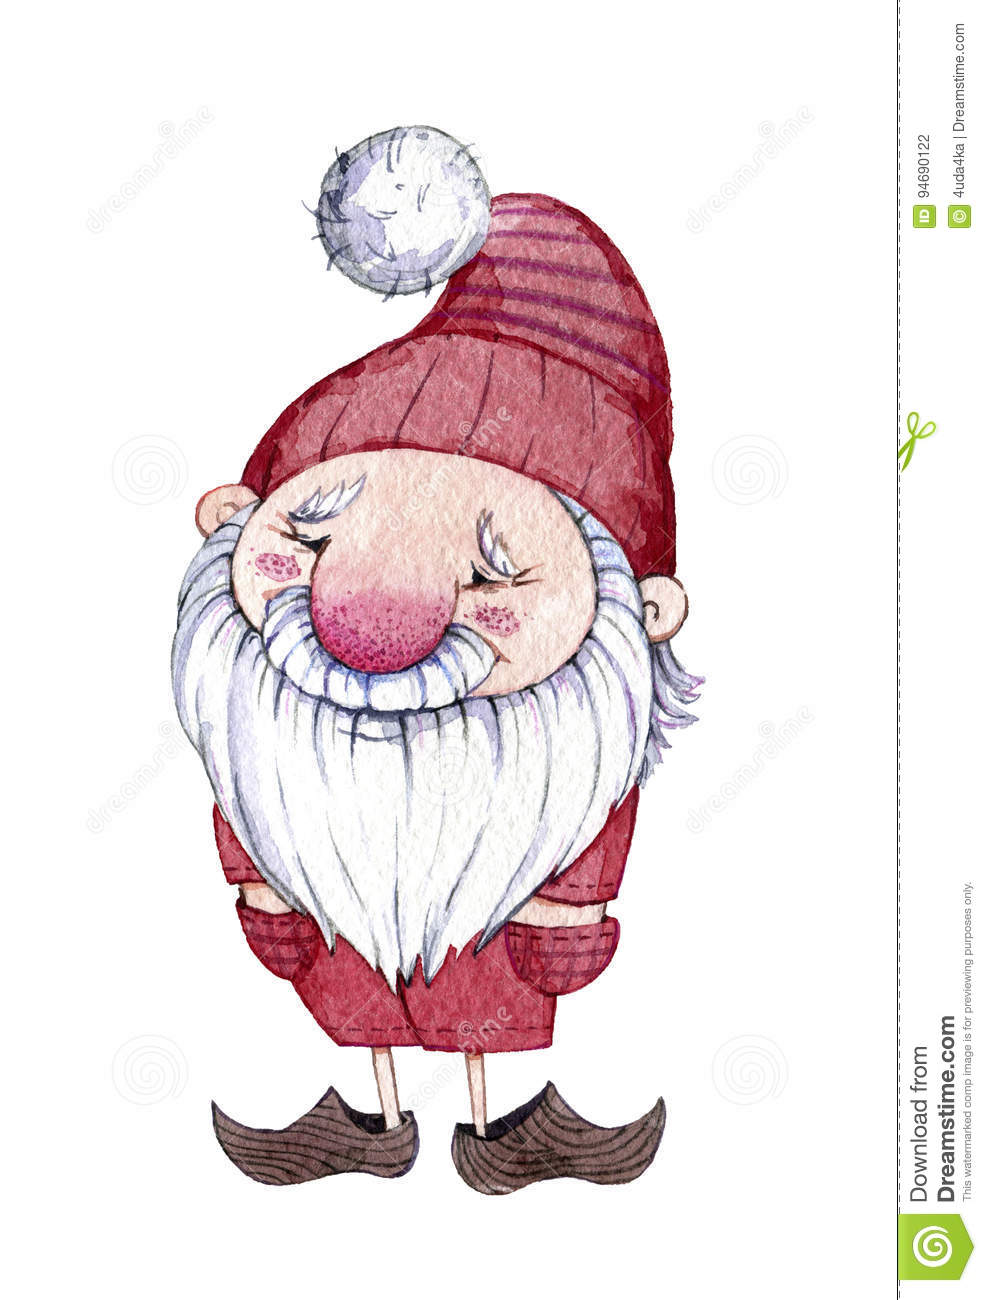 Watercolor Hand Drawn Fabulous Character Gnome. Stock Illustration ...